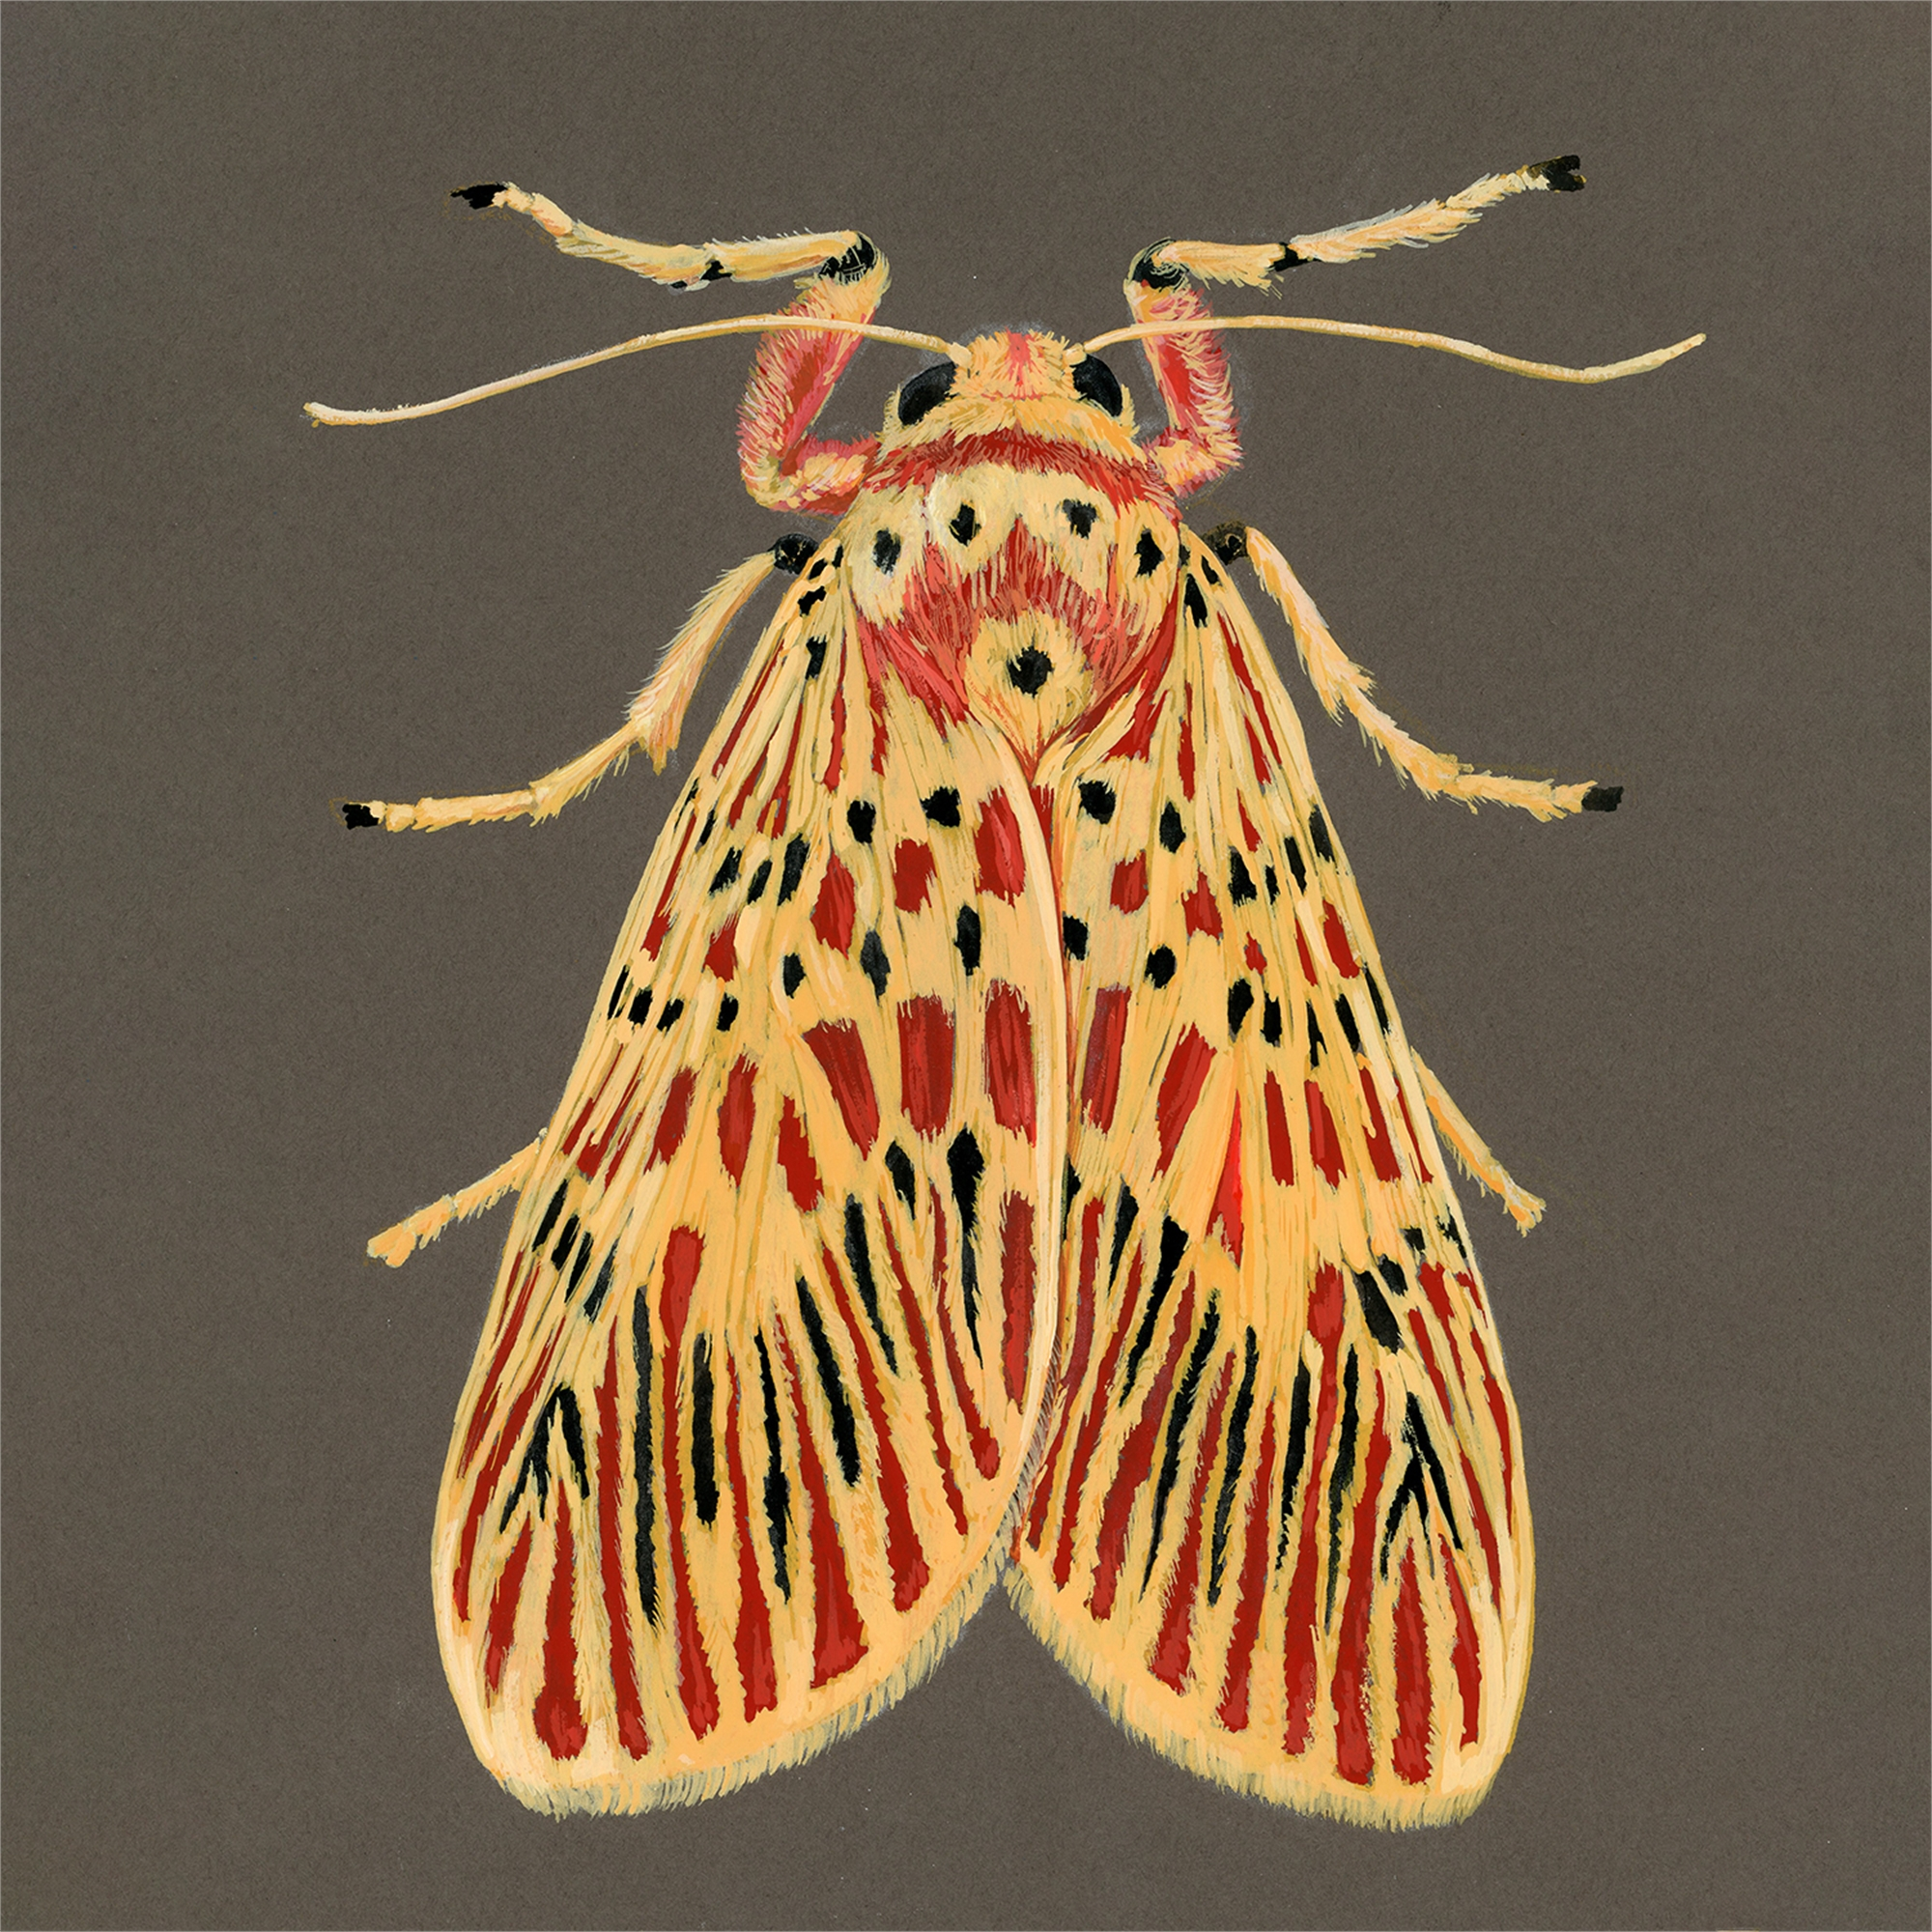 Footman Moth by Paul Atwell